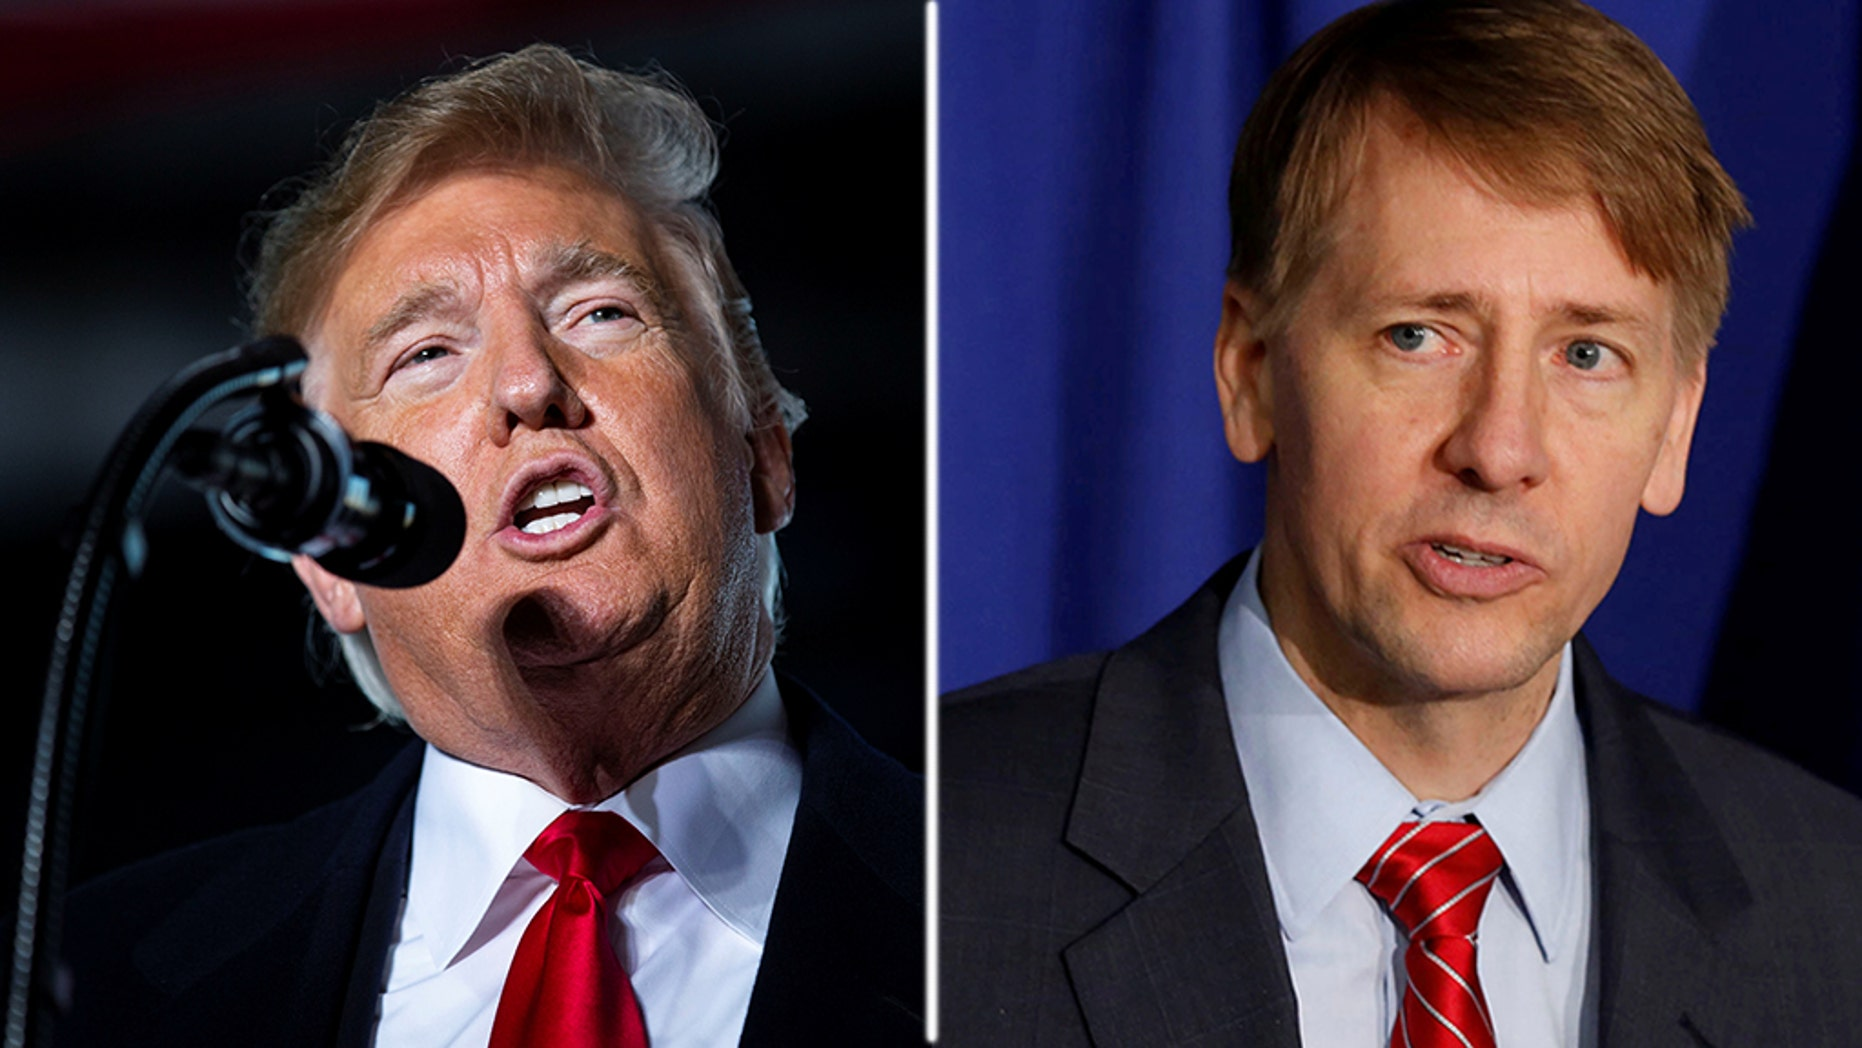 """Trump used Twitter on Tuesday to slam RichardCordray, the Democraticcandidate in Ohio's gubernatorial race, as the""""clone of Pocahontas."""" Pocahantas is his nickname for Massachusetts Sen. Elizabeth Warren, whom he has derided over her claims of a Native American heritage."""